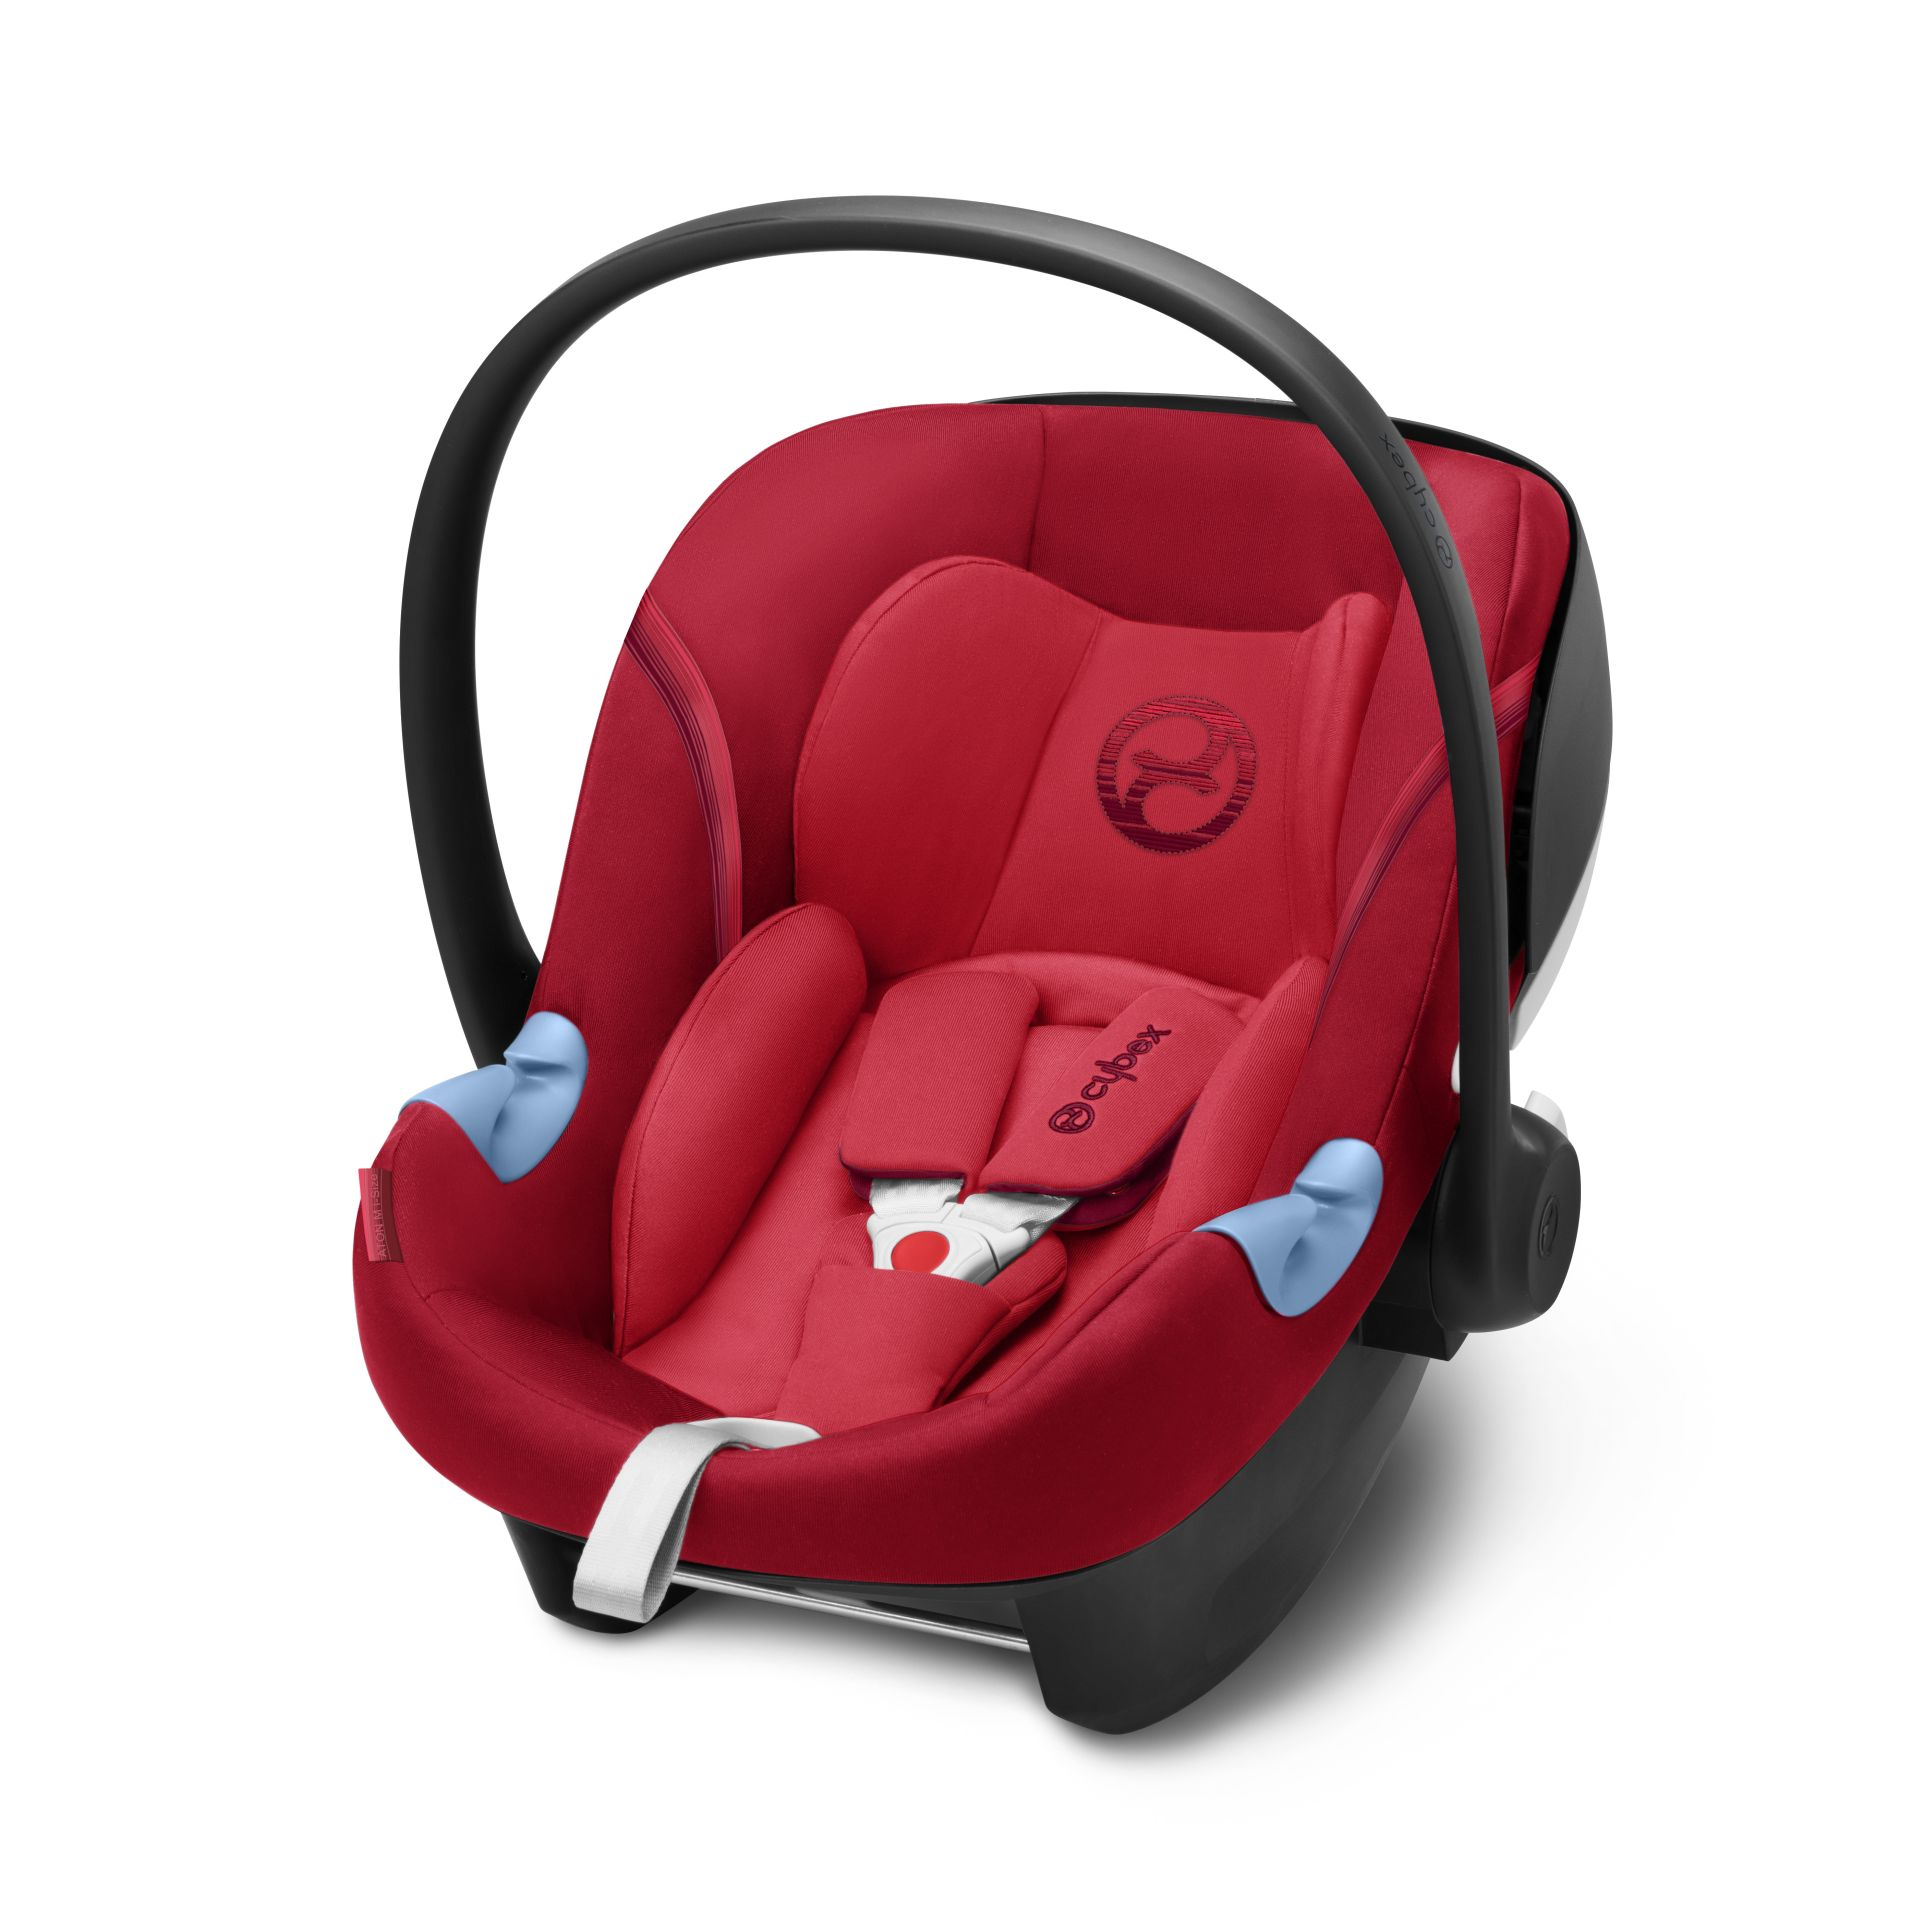 cybex infant car seat aton m i size 2018 rebel red red buy at kidsroom car seats. Black Bedroom Furniture Sets. Home Design Ideas